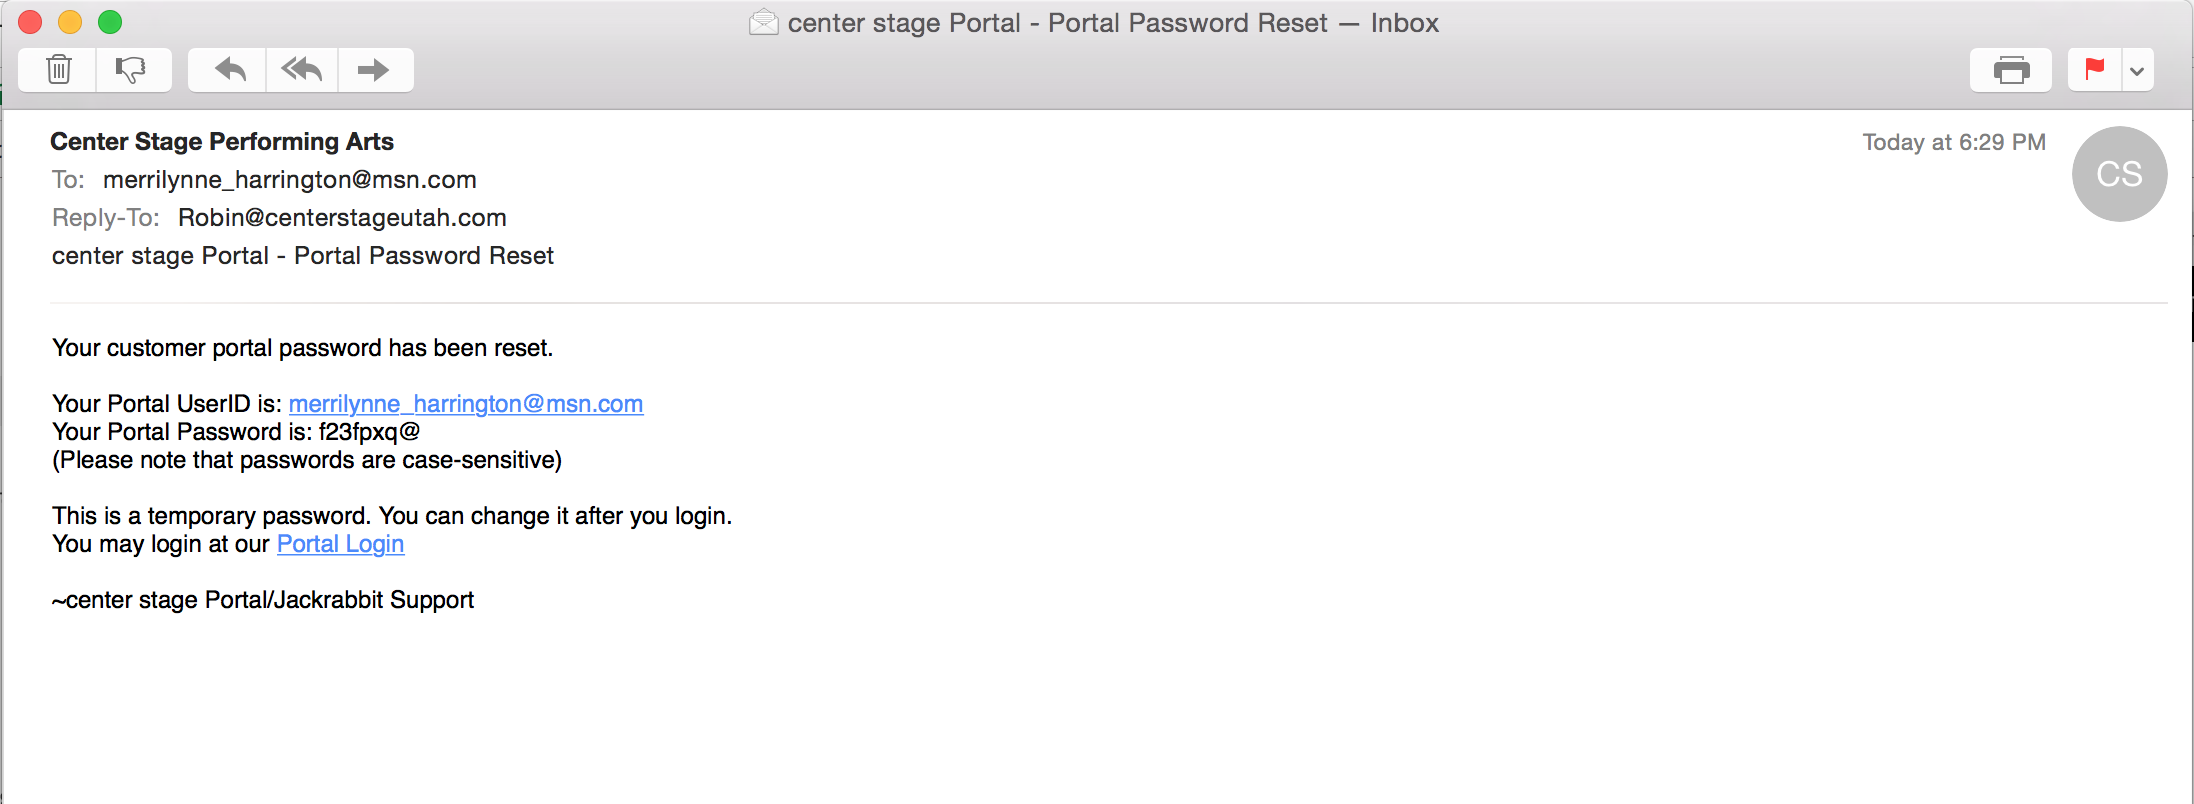 STEP 4. Check your email for a temporary password